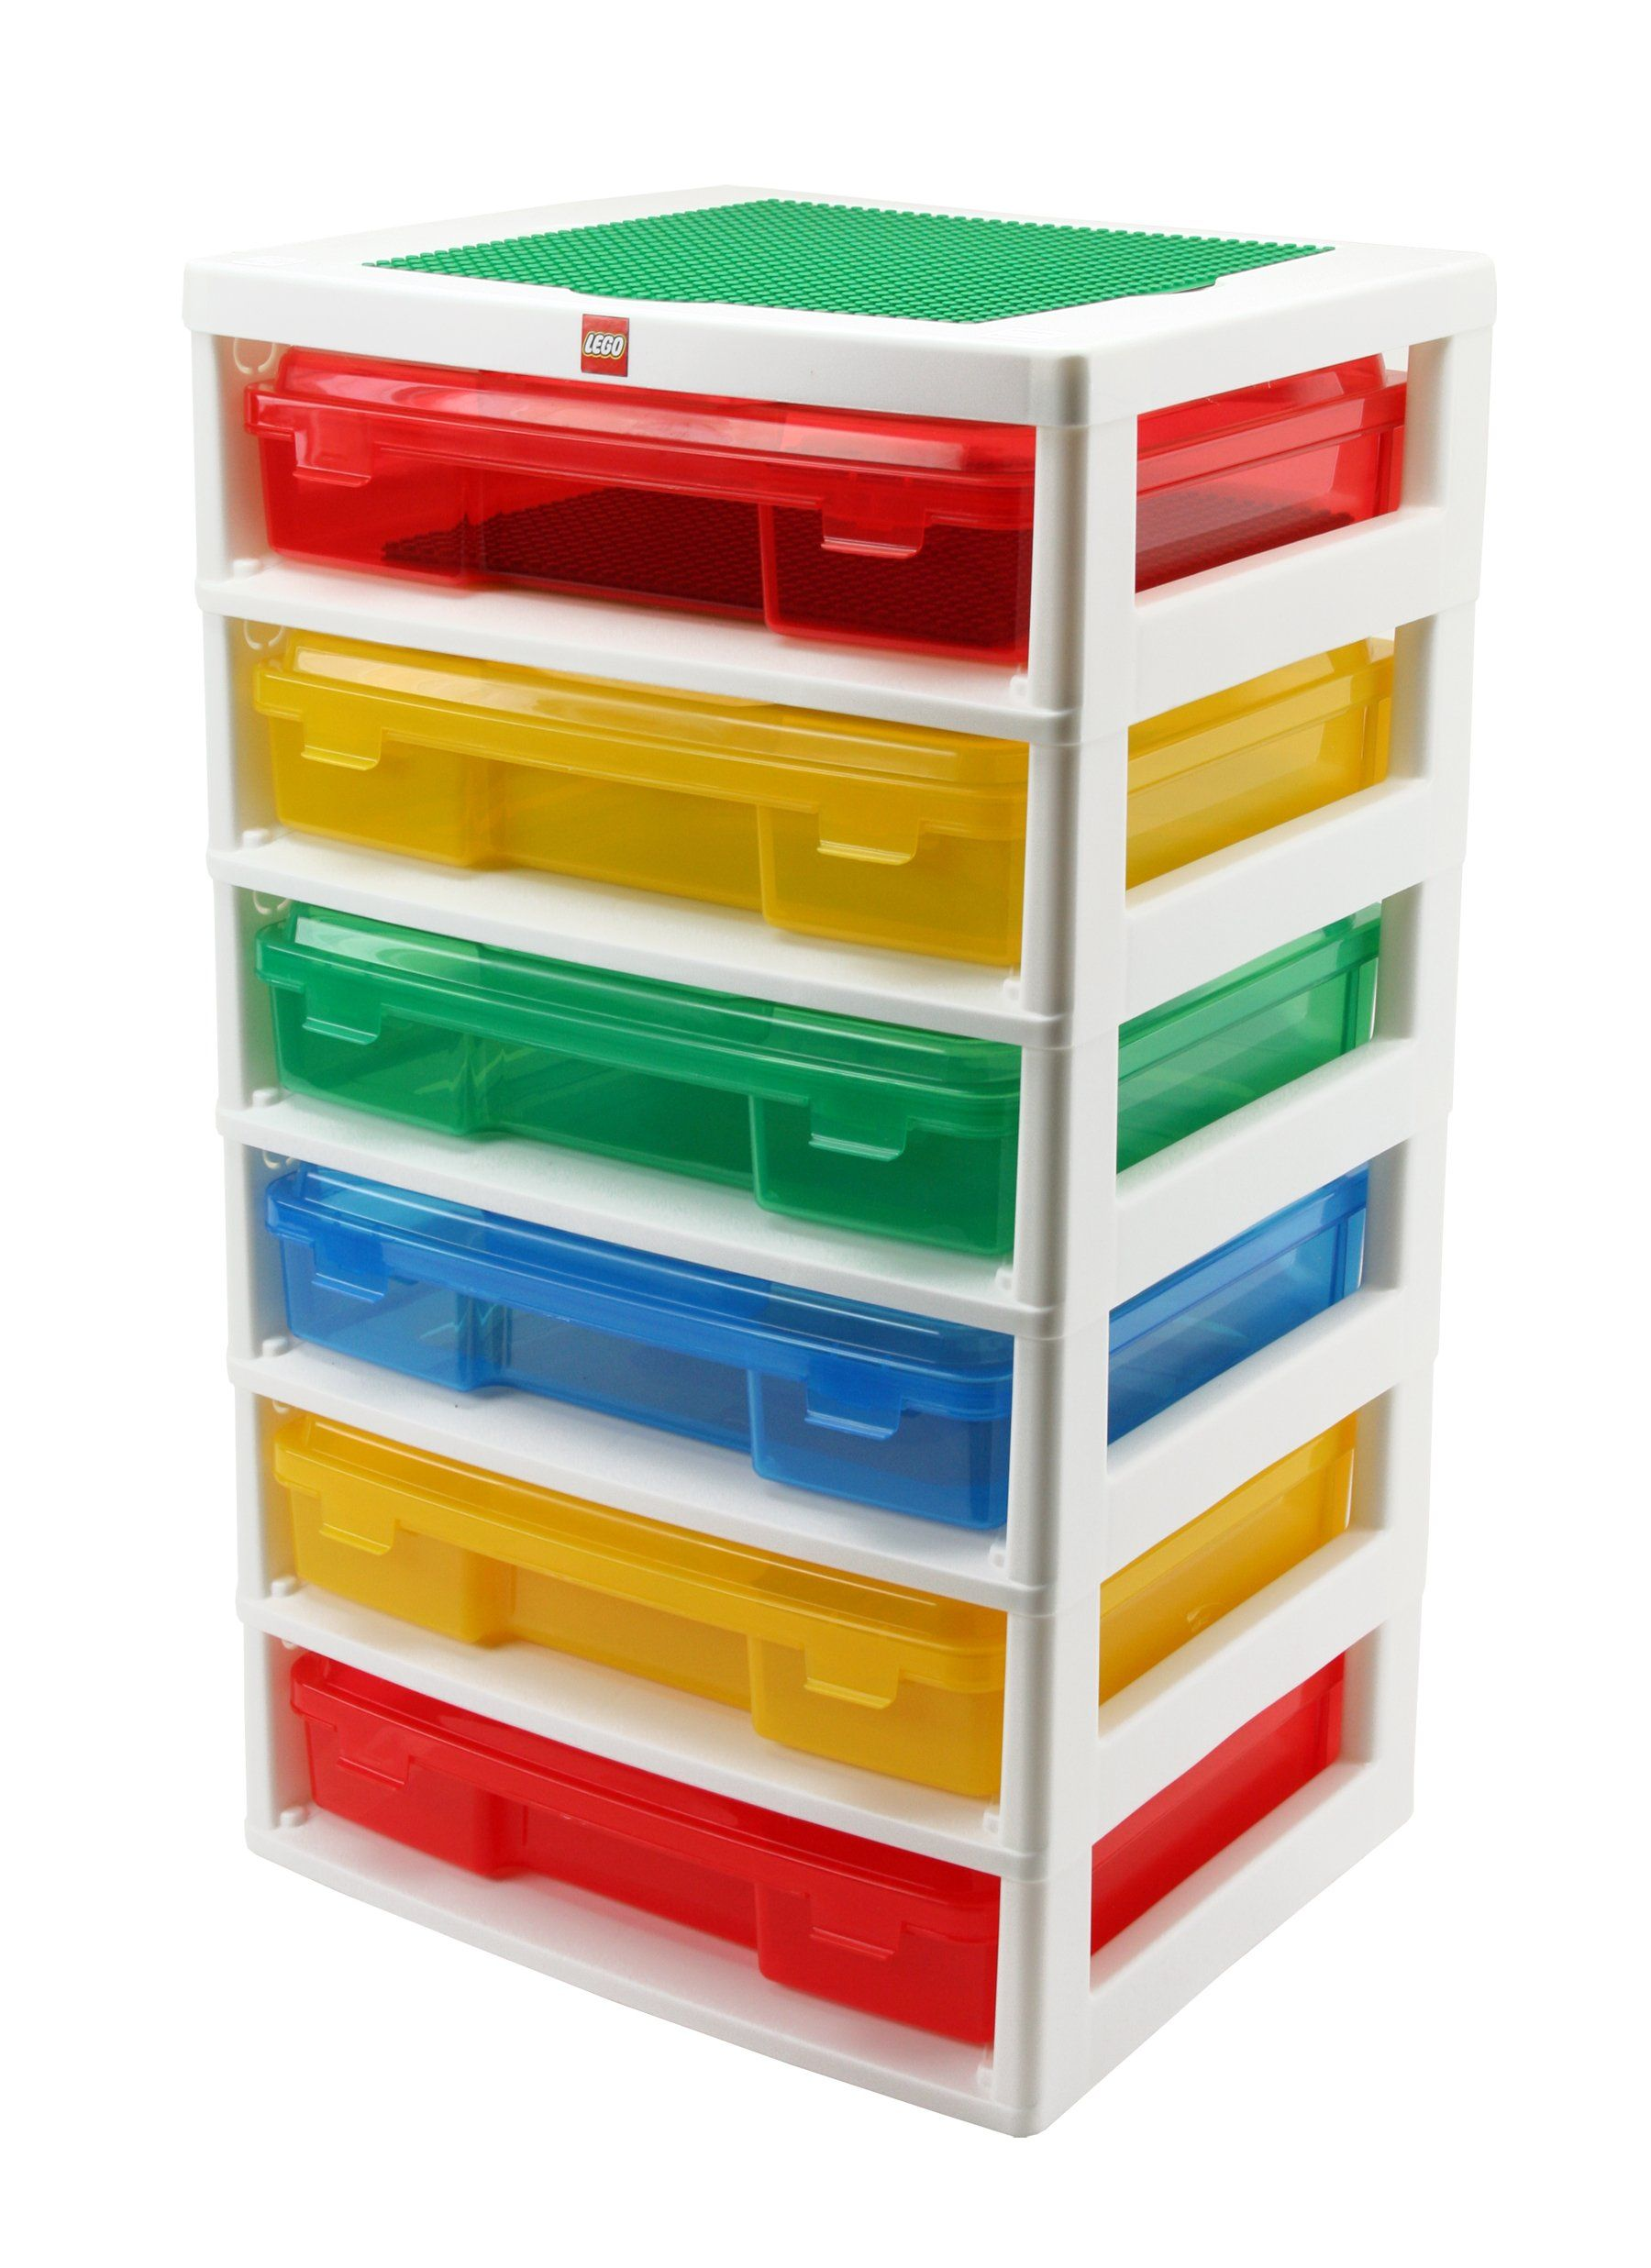 $54 Amazon.com - IRIS LEGO 6-Case Workstation and Storage Unit with 2 Base  Plates - Toy Interlocking Building Accessories